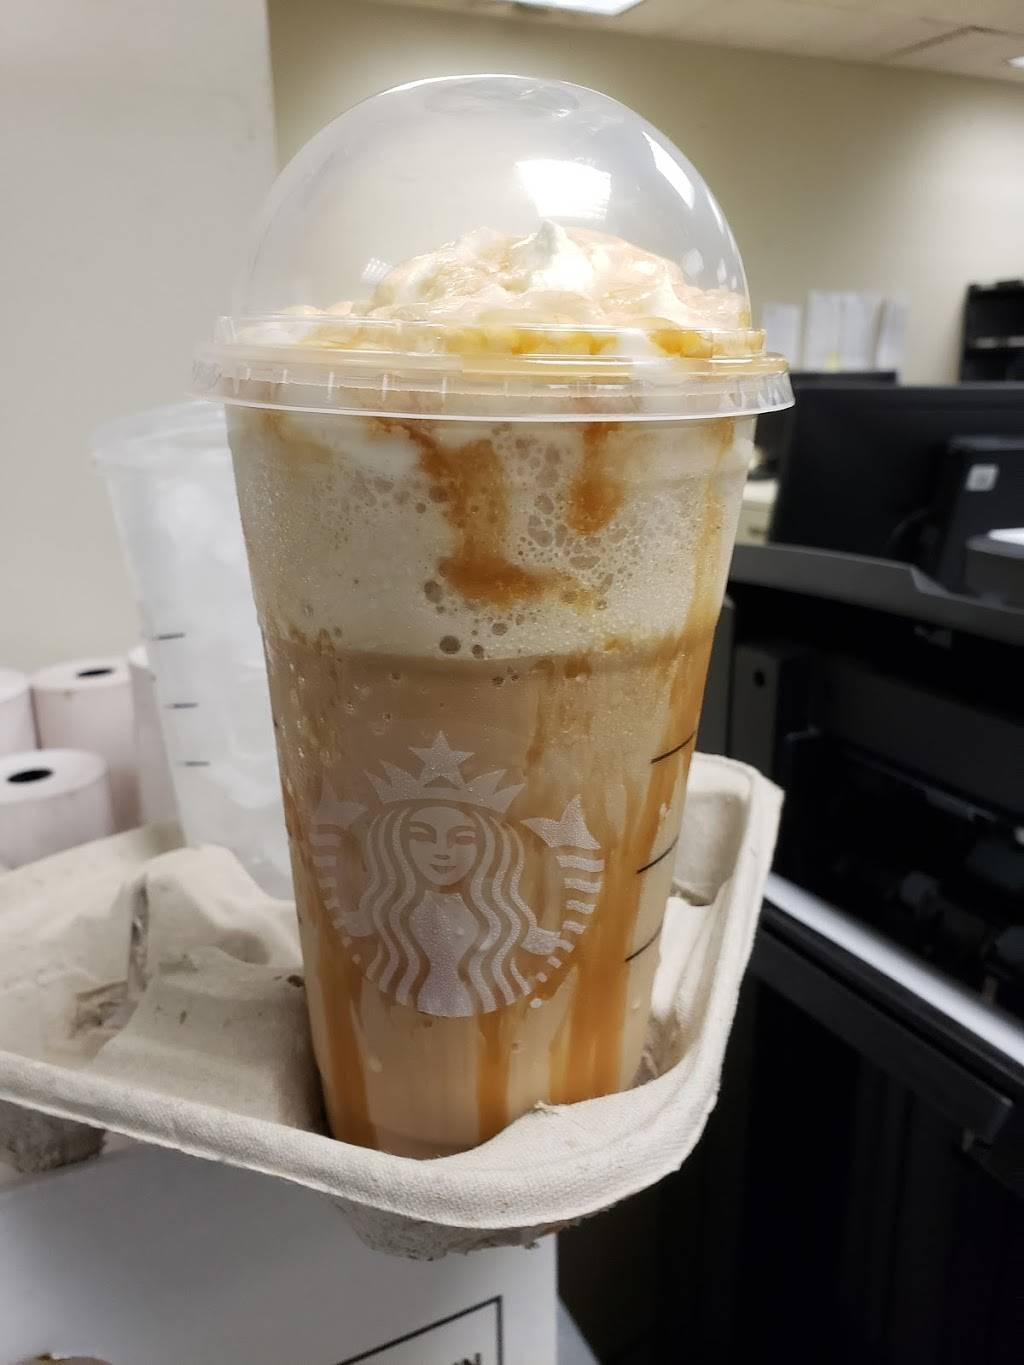 Starbucks Coffee | cafe | 4019 W 167th St, Country Club Hills, IL 60478, USA | 7087995647 OR +1 708-799-5647